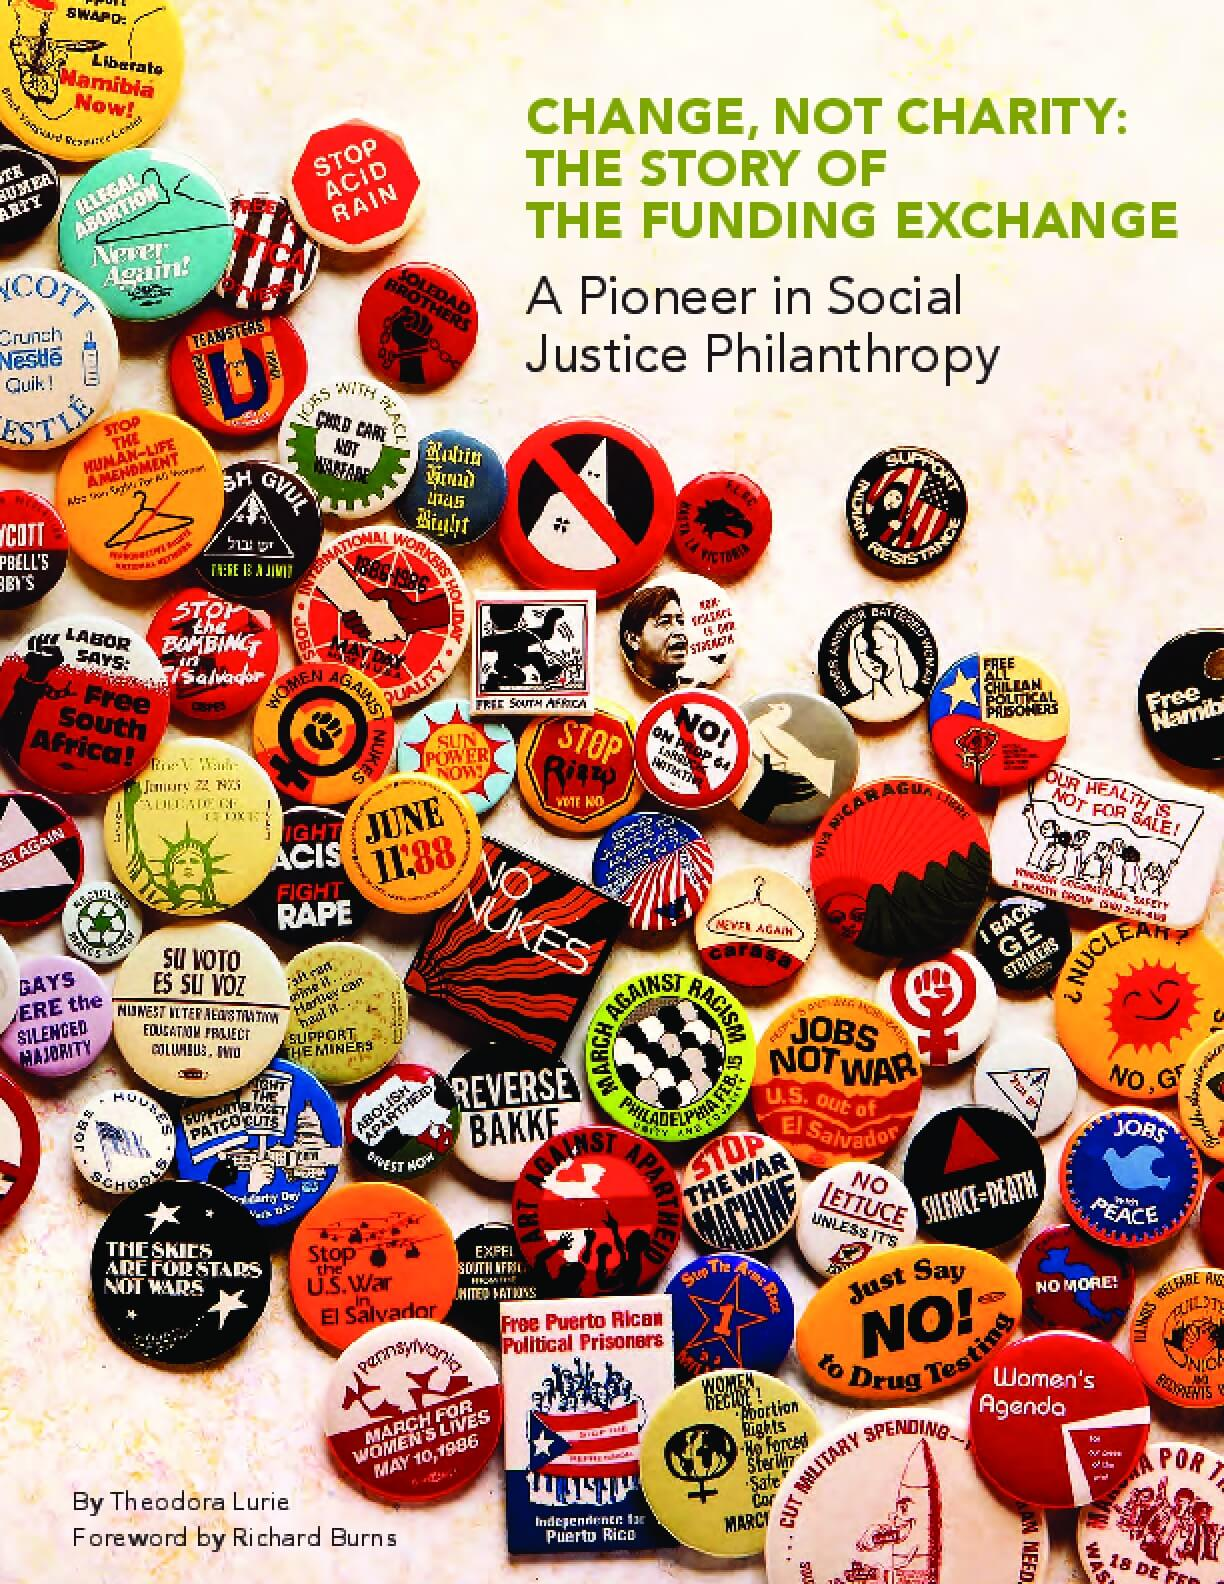 Change, Not Charity: The Story of the Funding Exchange - A Pioneer in Social Justice Philanthropy